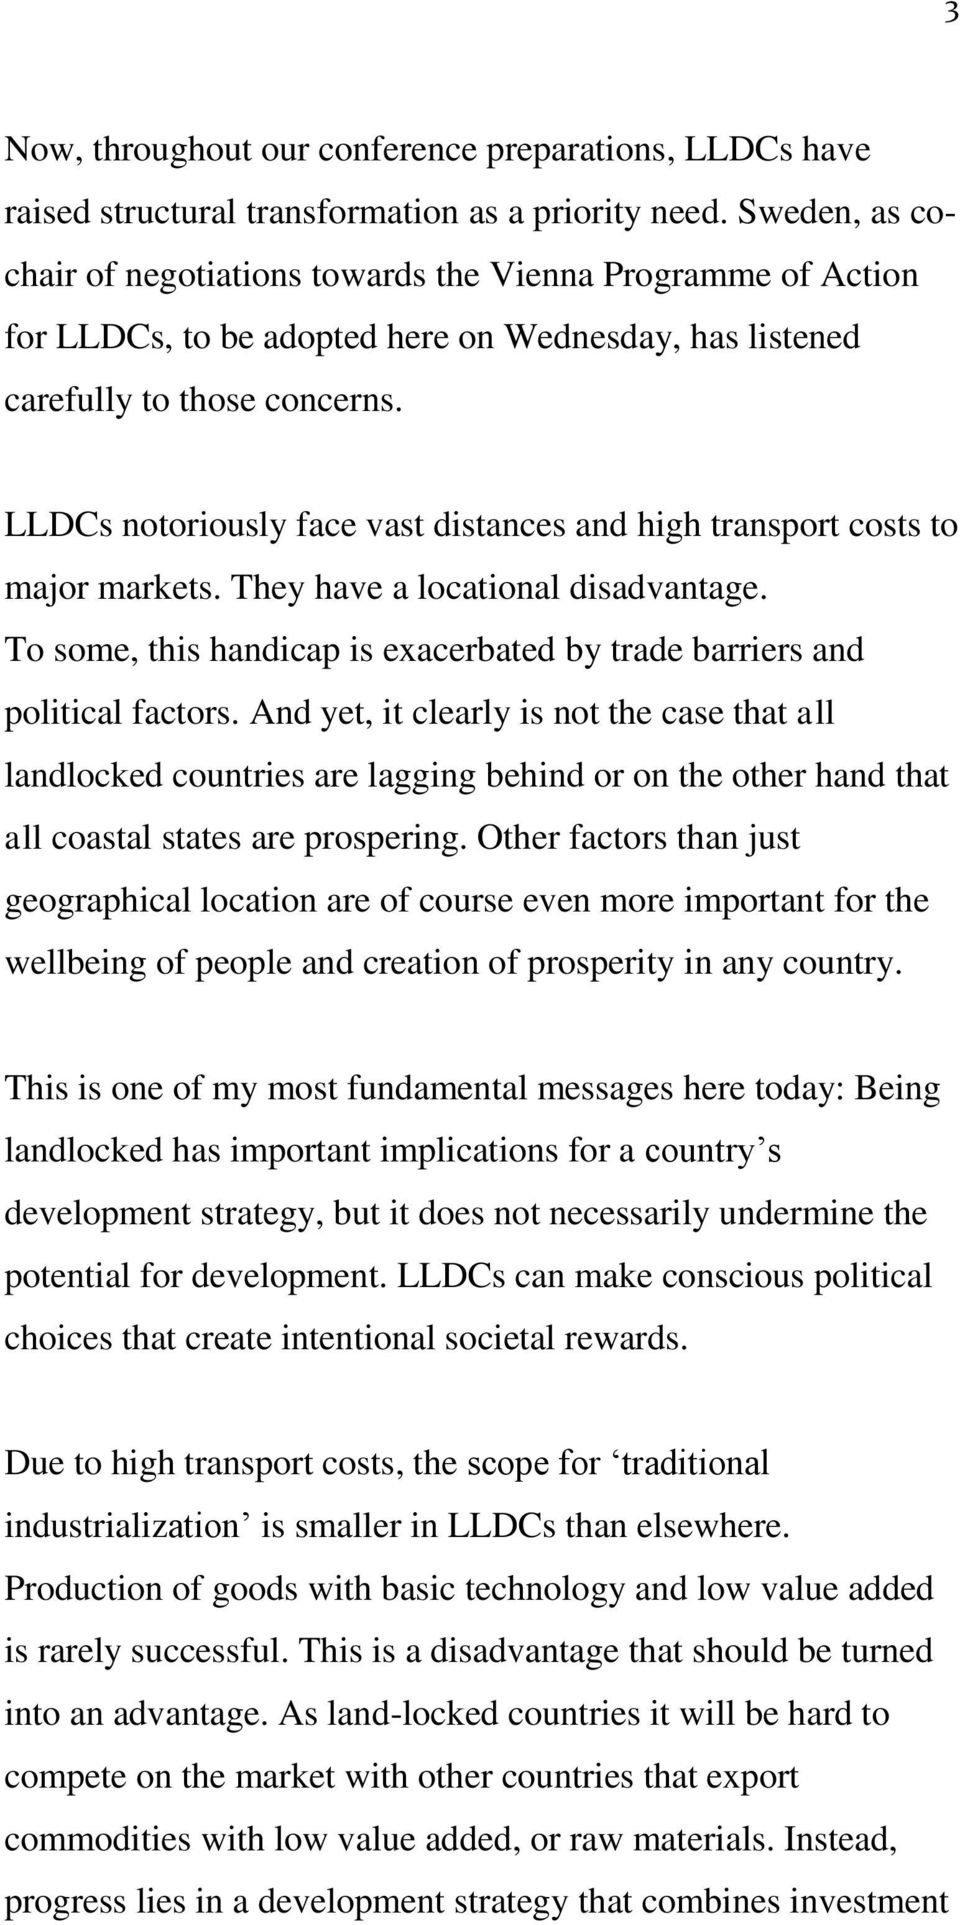 LLDCs notoriously face vast distances and high transport costs to major markets. They have a locational disadvantage. To some, this handicap is exacerbated by trade barriers and political factors.